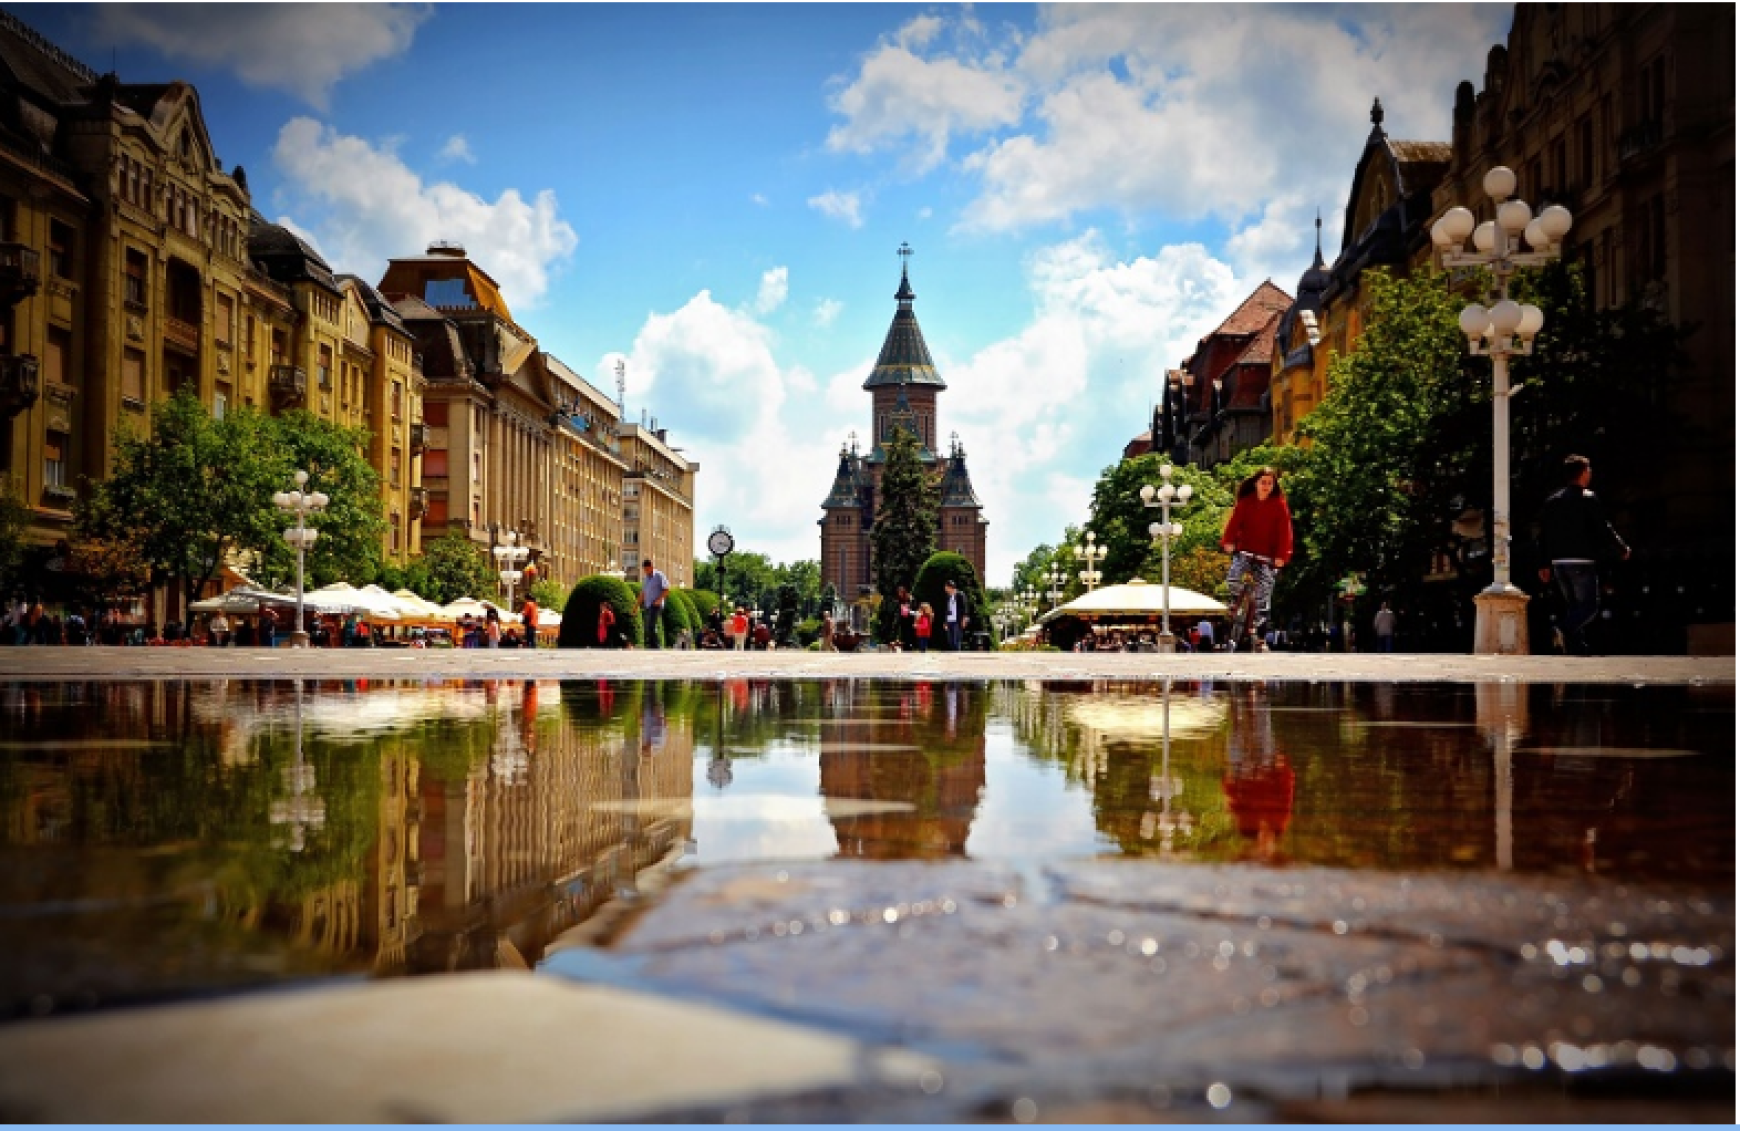 Timisoara, together with Arad will be Romania's European Capital of Culture in 2021